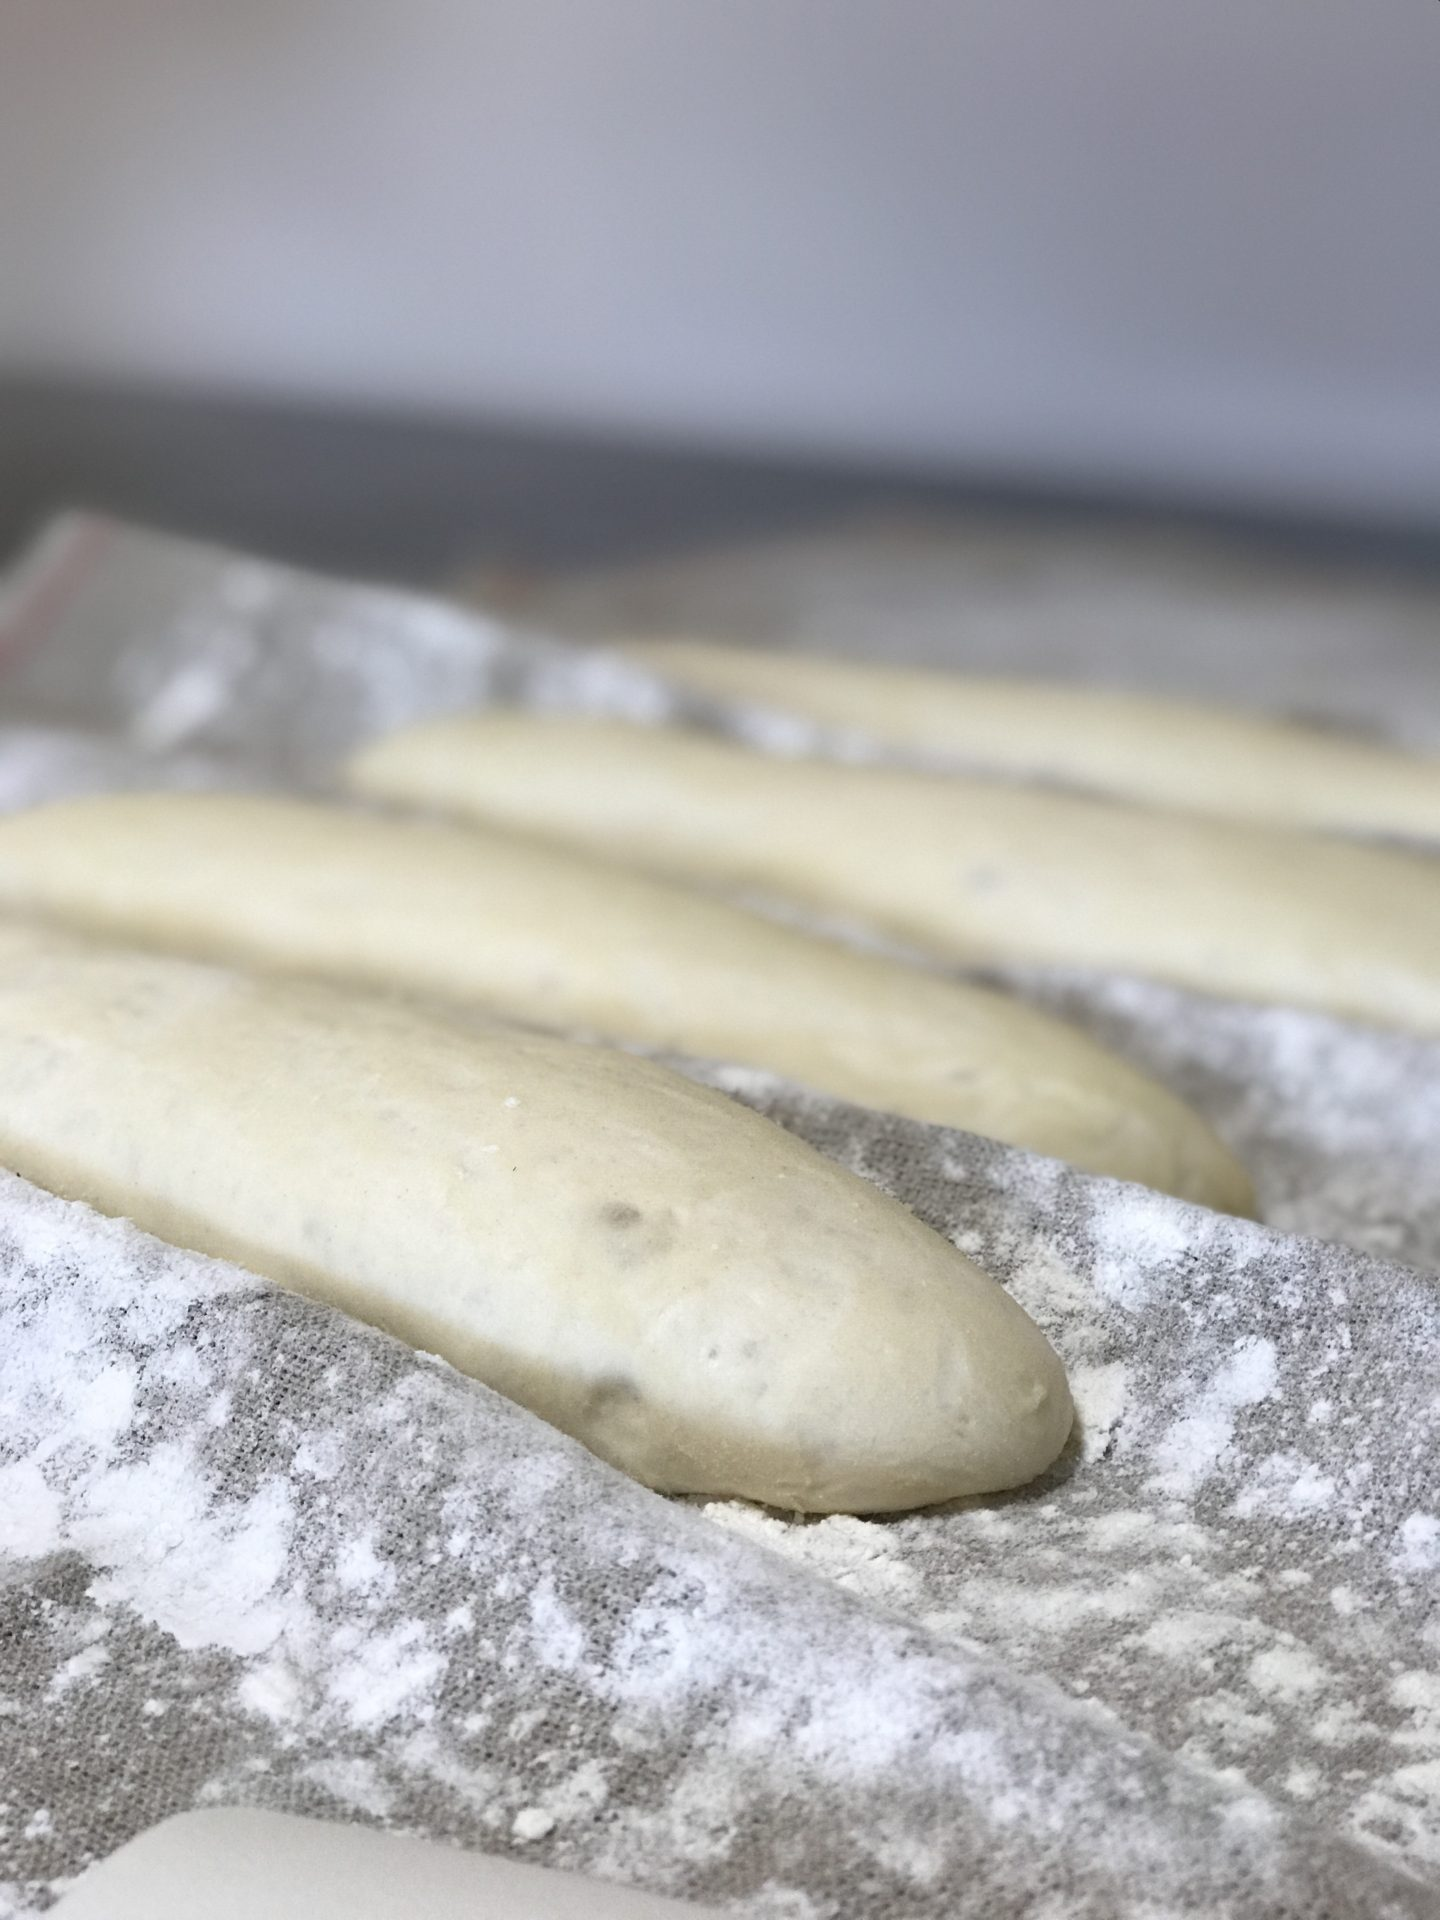 Learn how to make some delicious crunch french bread! Making bread is actually a lot easier than you would think! This simple, 4 ingredient recipe will make the BEST french bread. Give it a try!